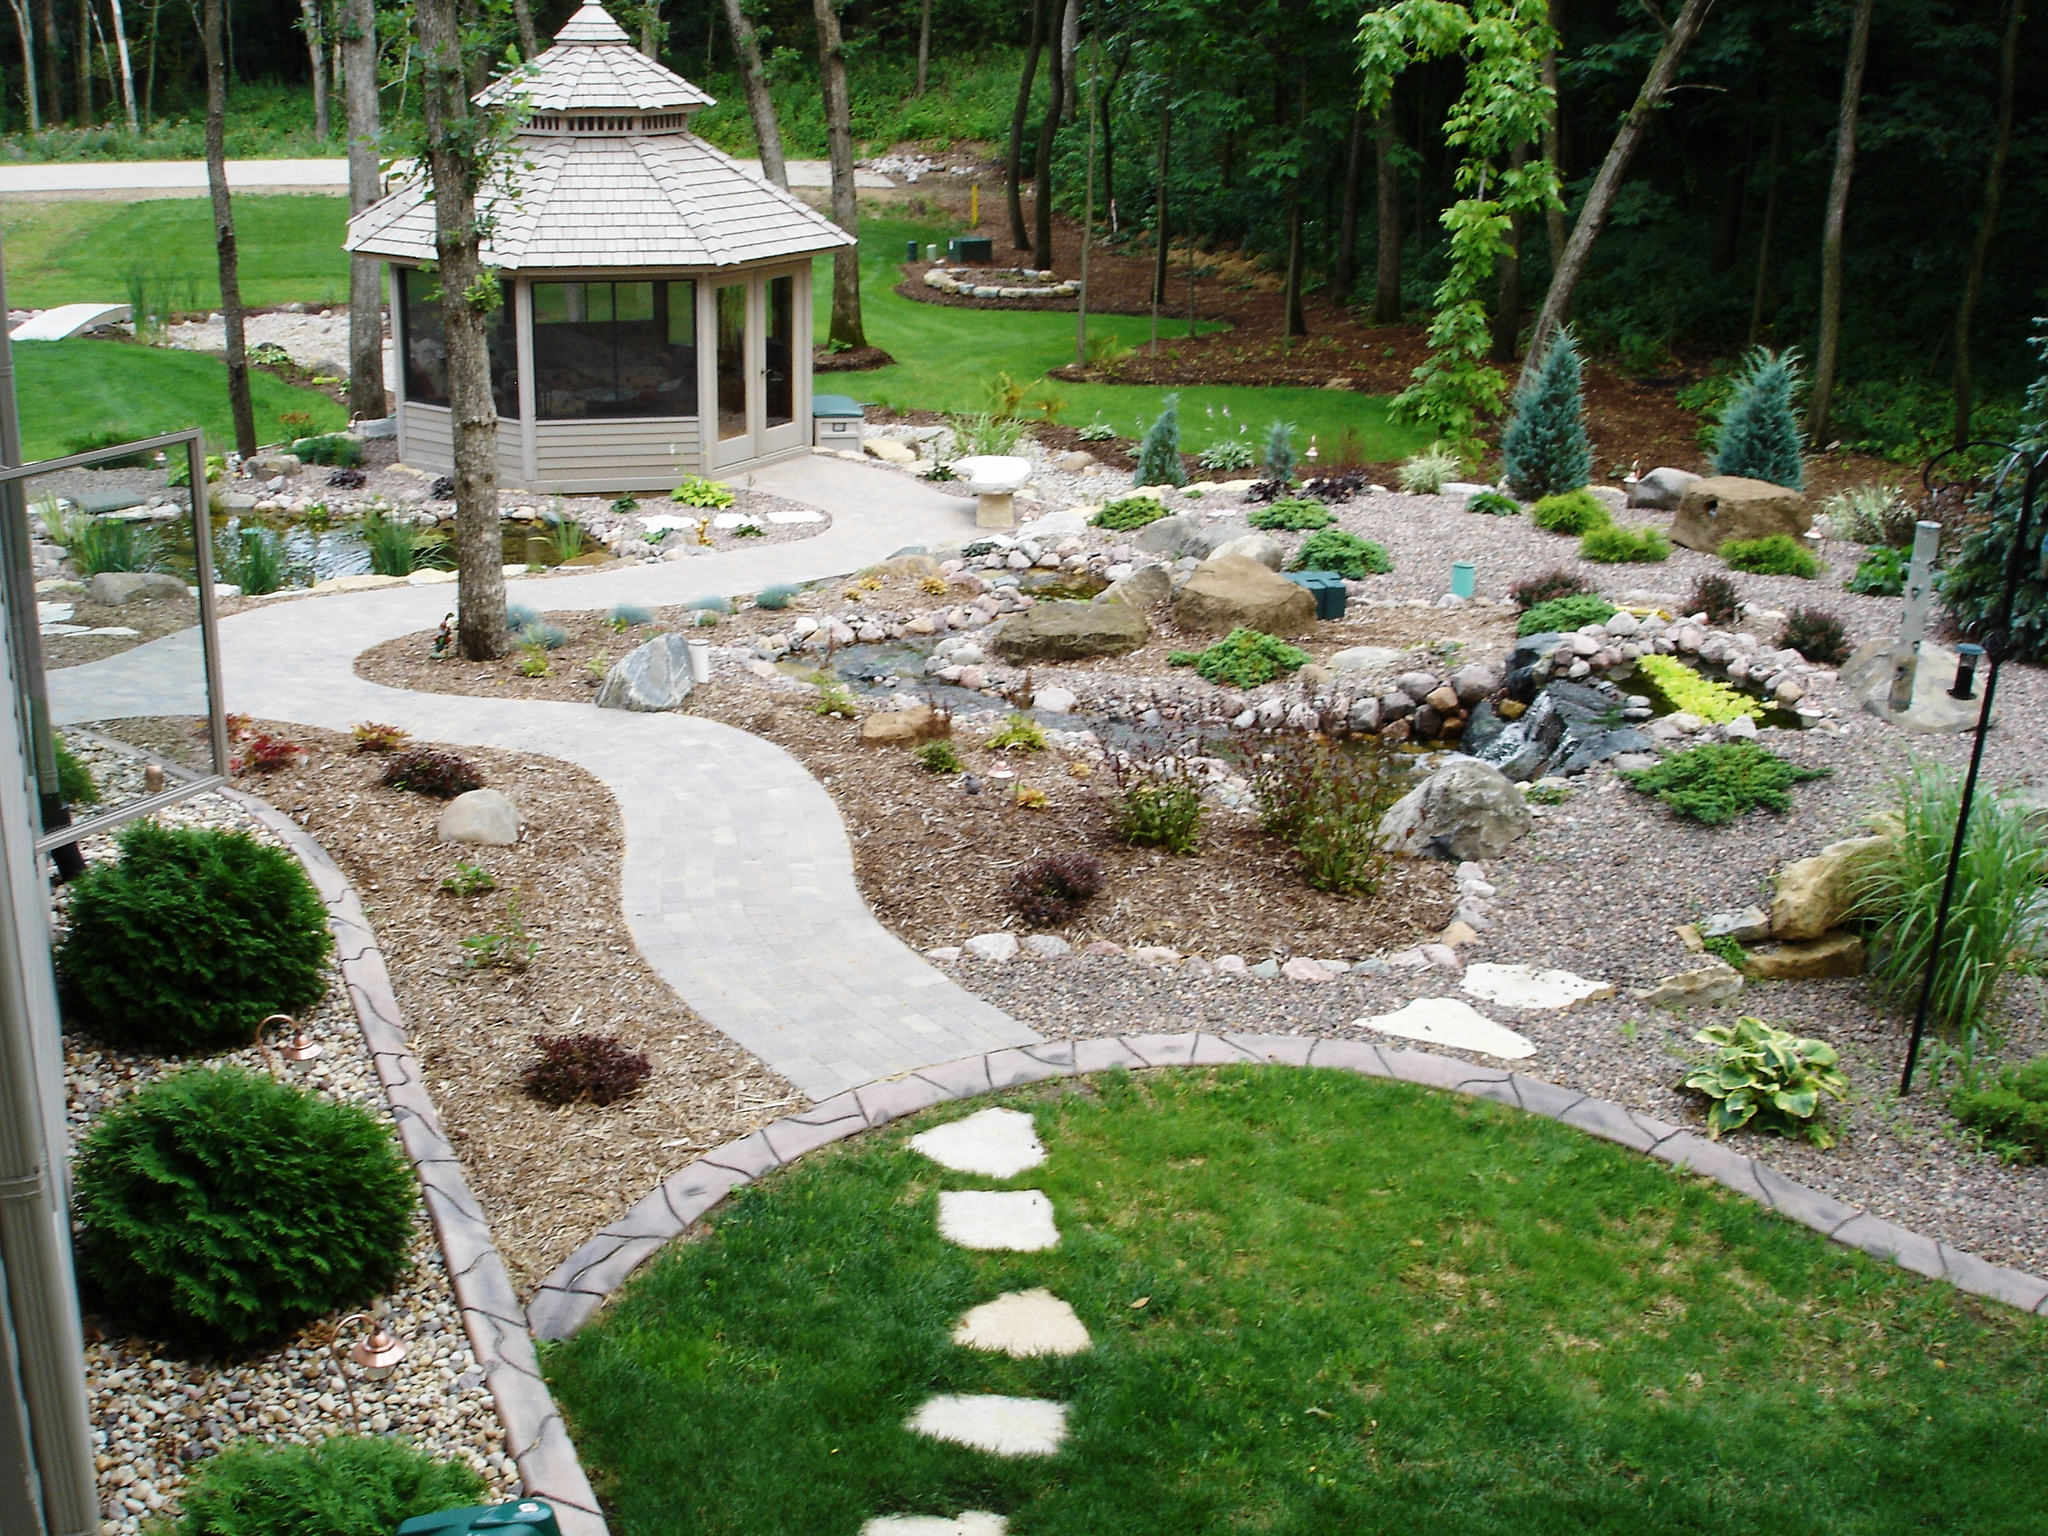 Pond and pondless waterfall in Monona, WI